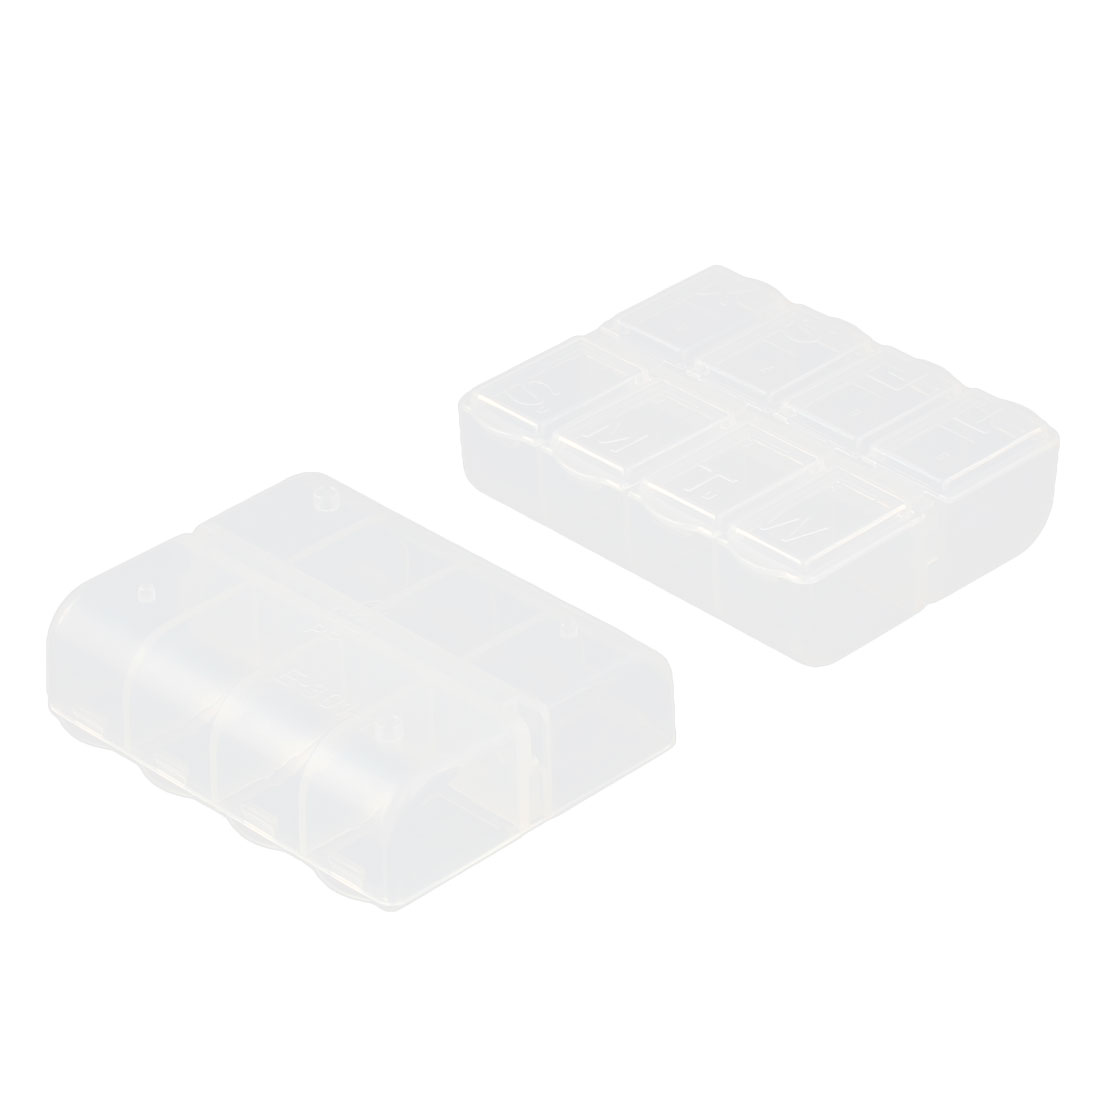 Home Desk Nail Art Beads Plastic 8 Slots Storage Box Container Compartment Clear 2pcs